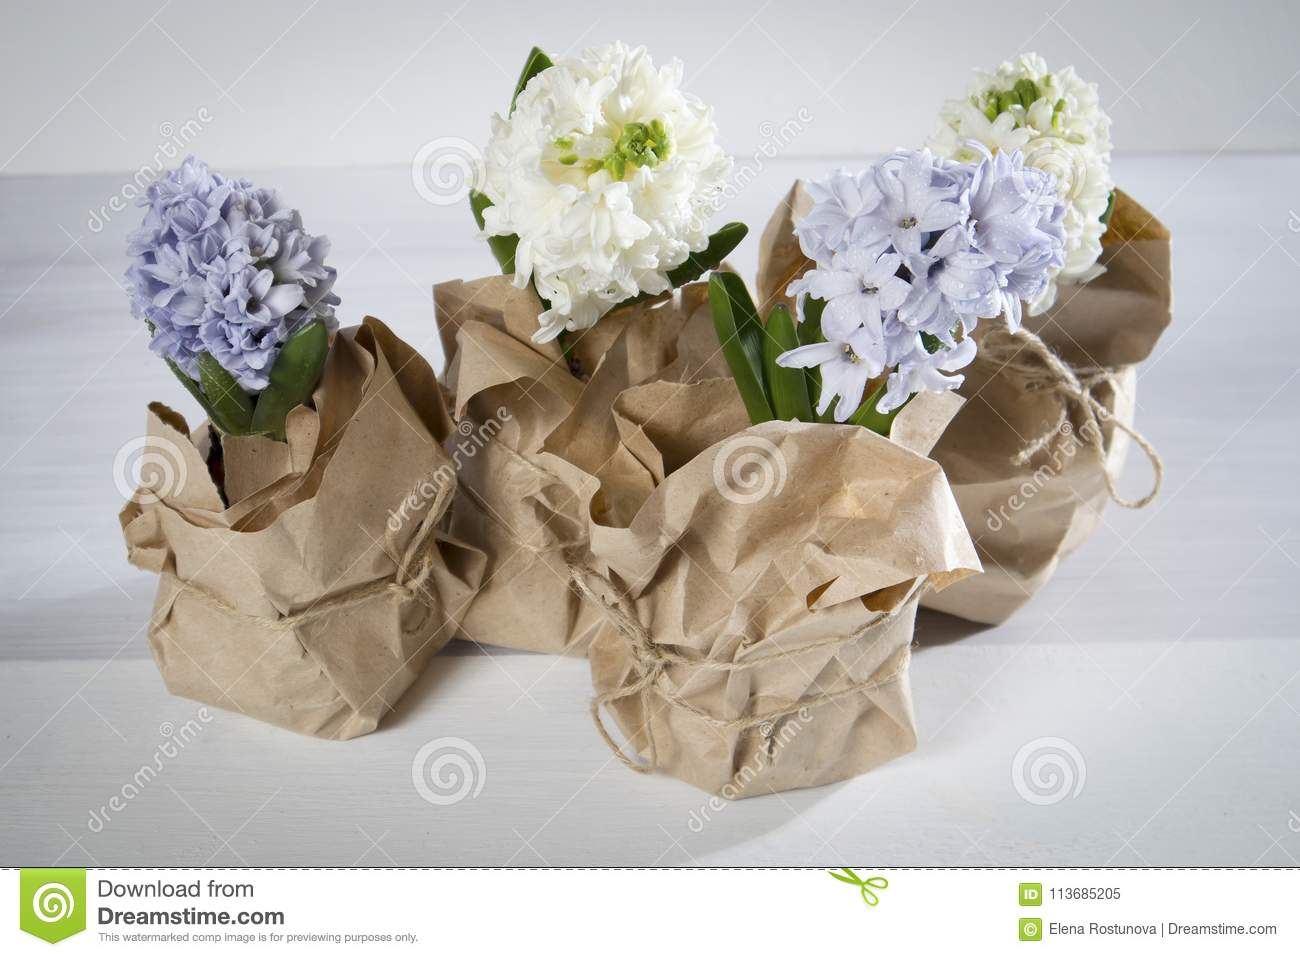 The Flowers Composition With Lilac And White Hyacinths Wrapped In